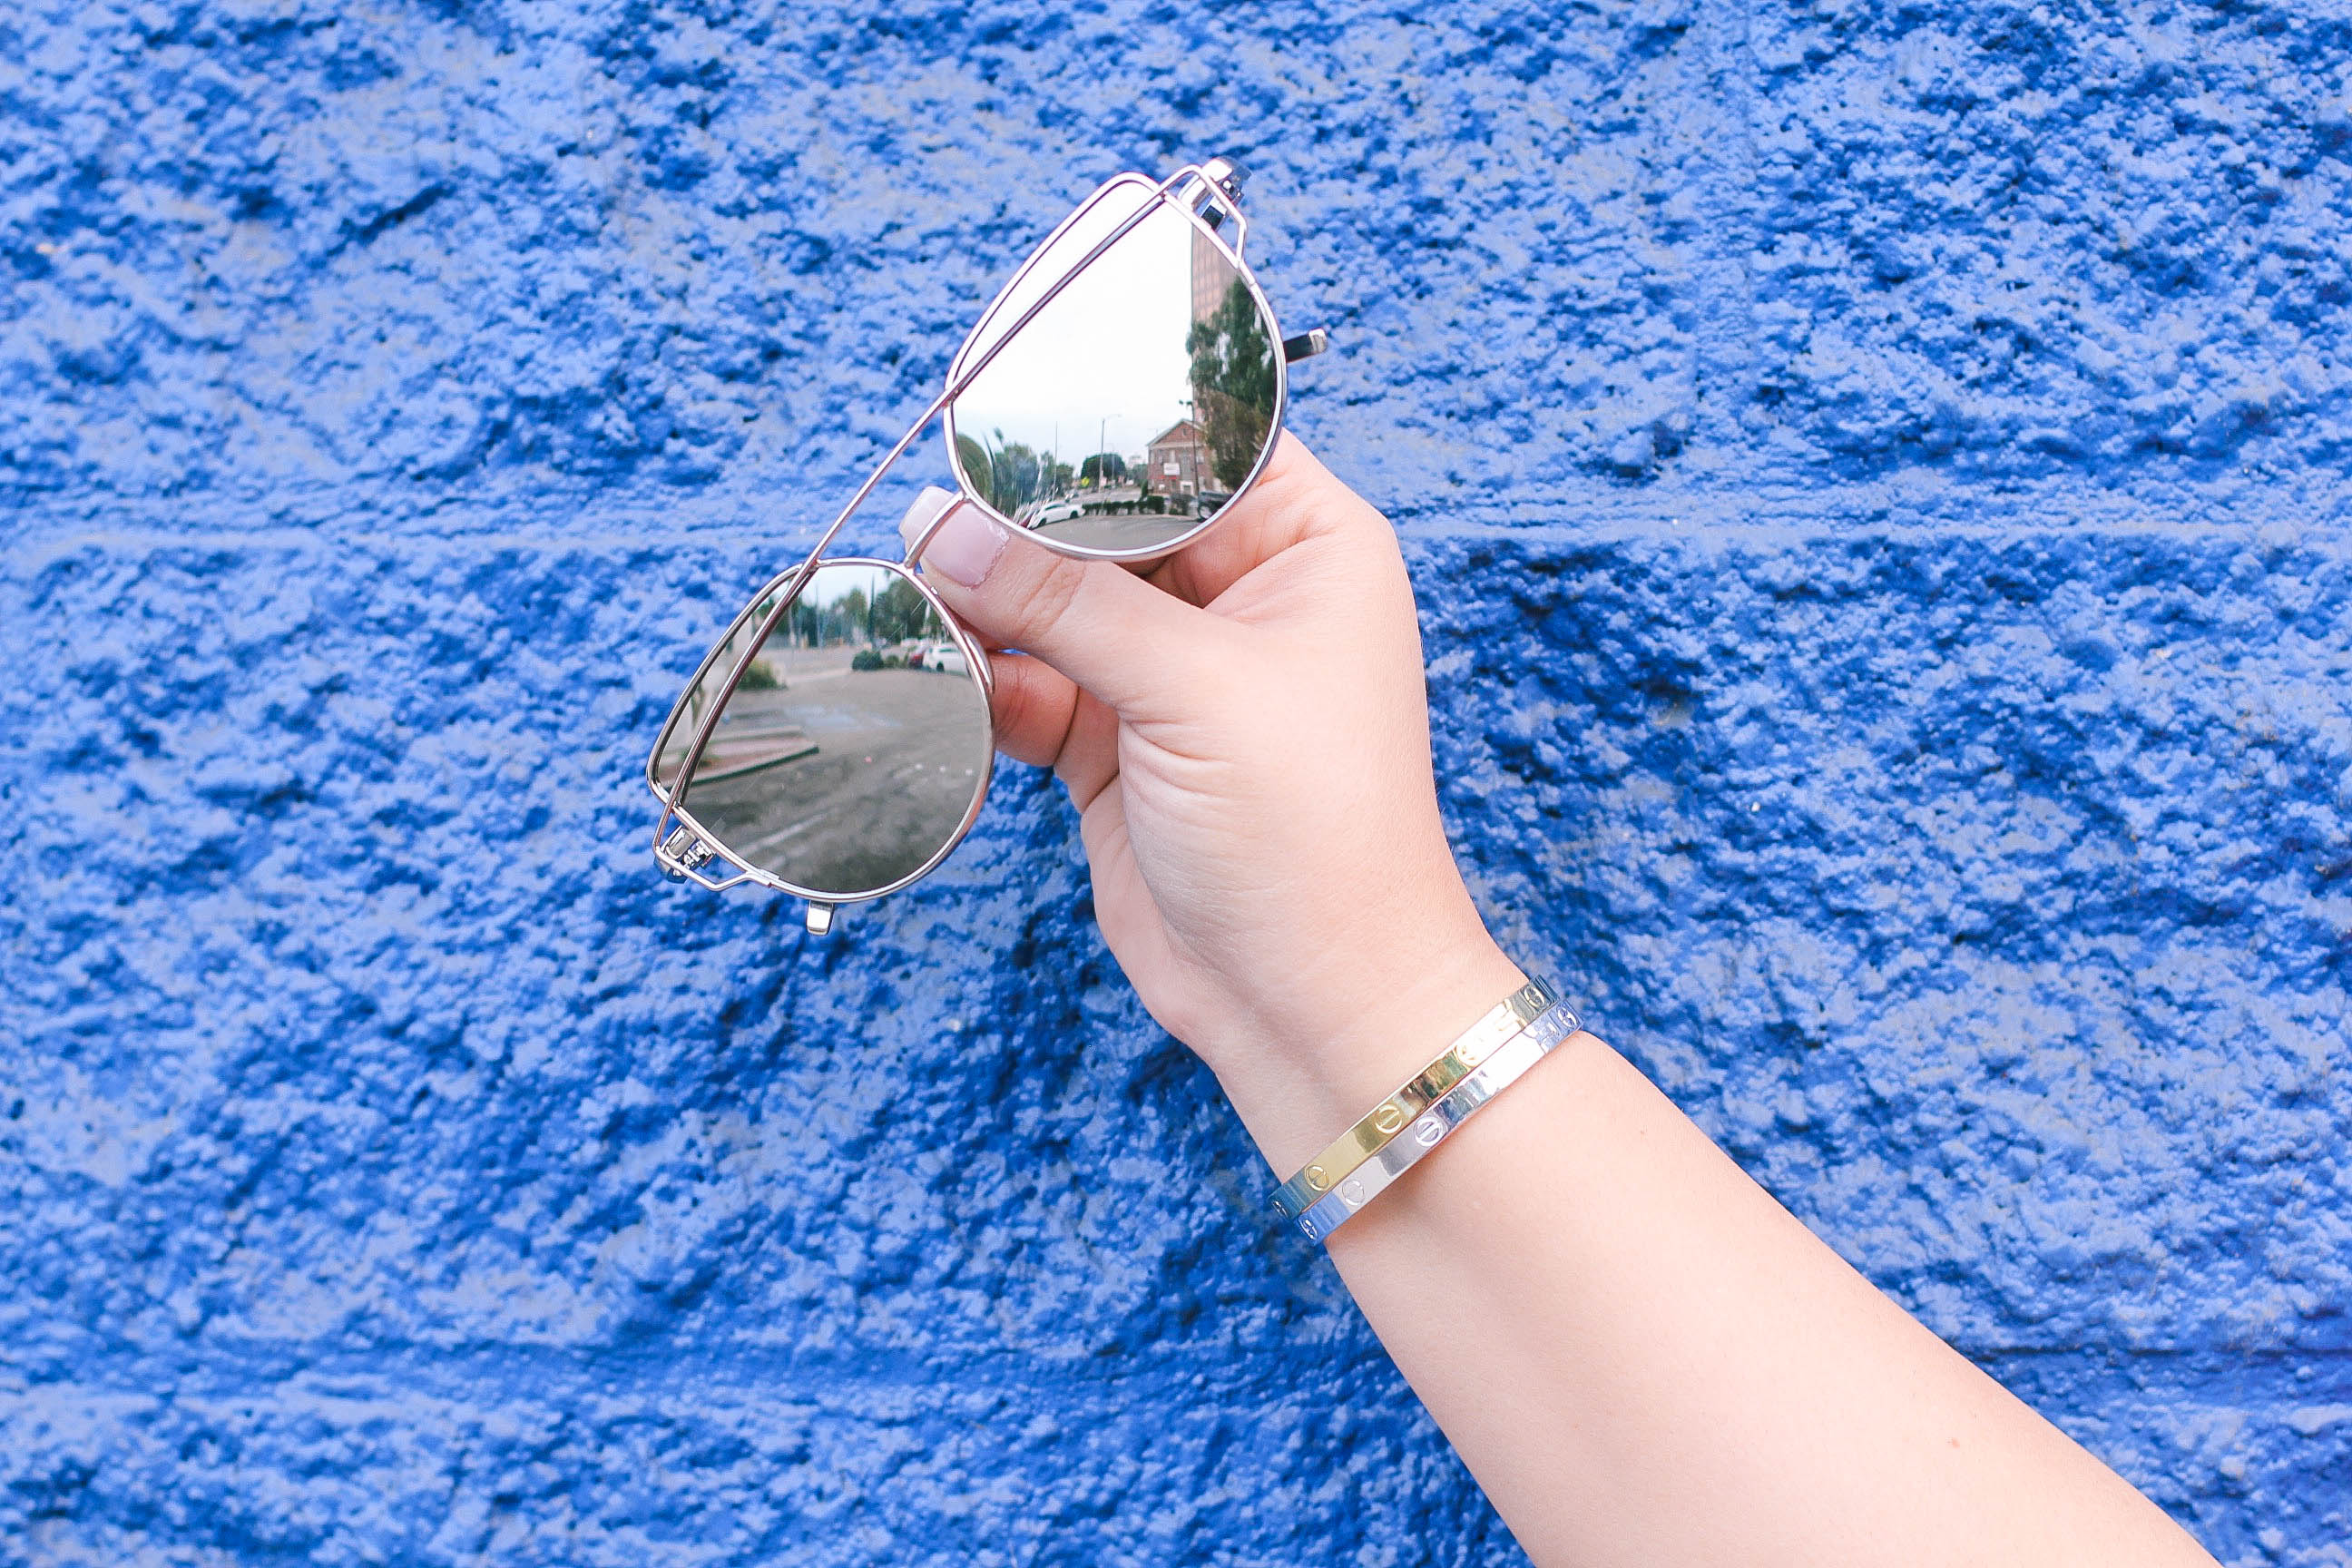 missyonmadison, ily mix, metal sunglasses, mirrored sunnies, mirrored sunglasses, metal mirrored sunglasses, metal framed sunglasses, sunglasses, dior sunglasses, ray bans, mirrored sunnies, la blogger, fashion blogger, sunglasses shopping guide,